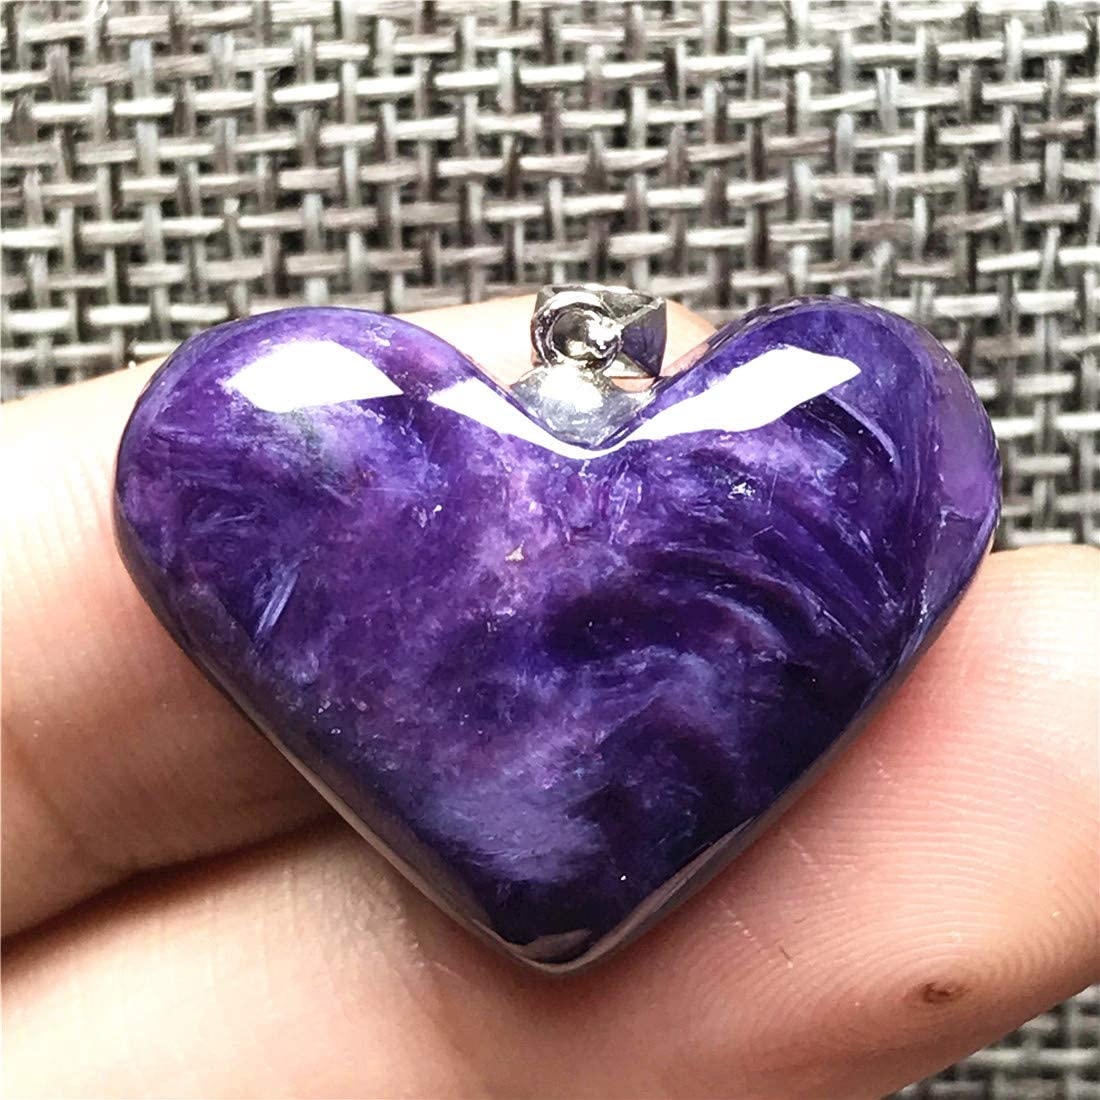 Heart Charoite Pendant for Woman Man Beads Stone 925 Silver Sterling Gemstone Jewelry AAAAA DUOVEKT 26x7mm Natural Purple Charoite Crystal